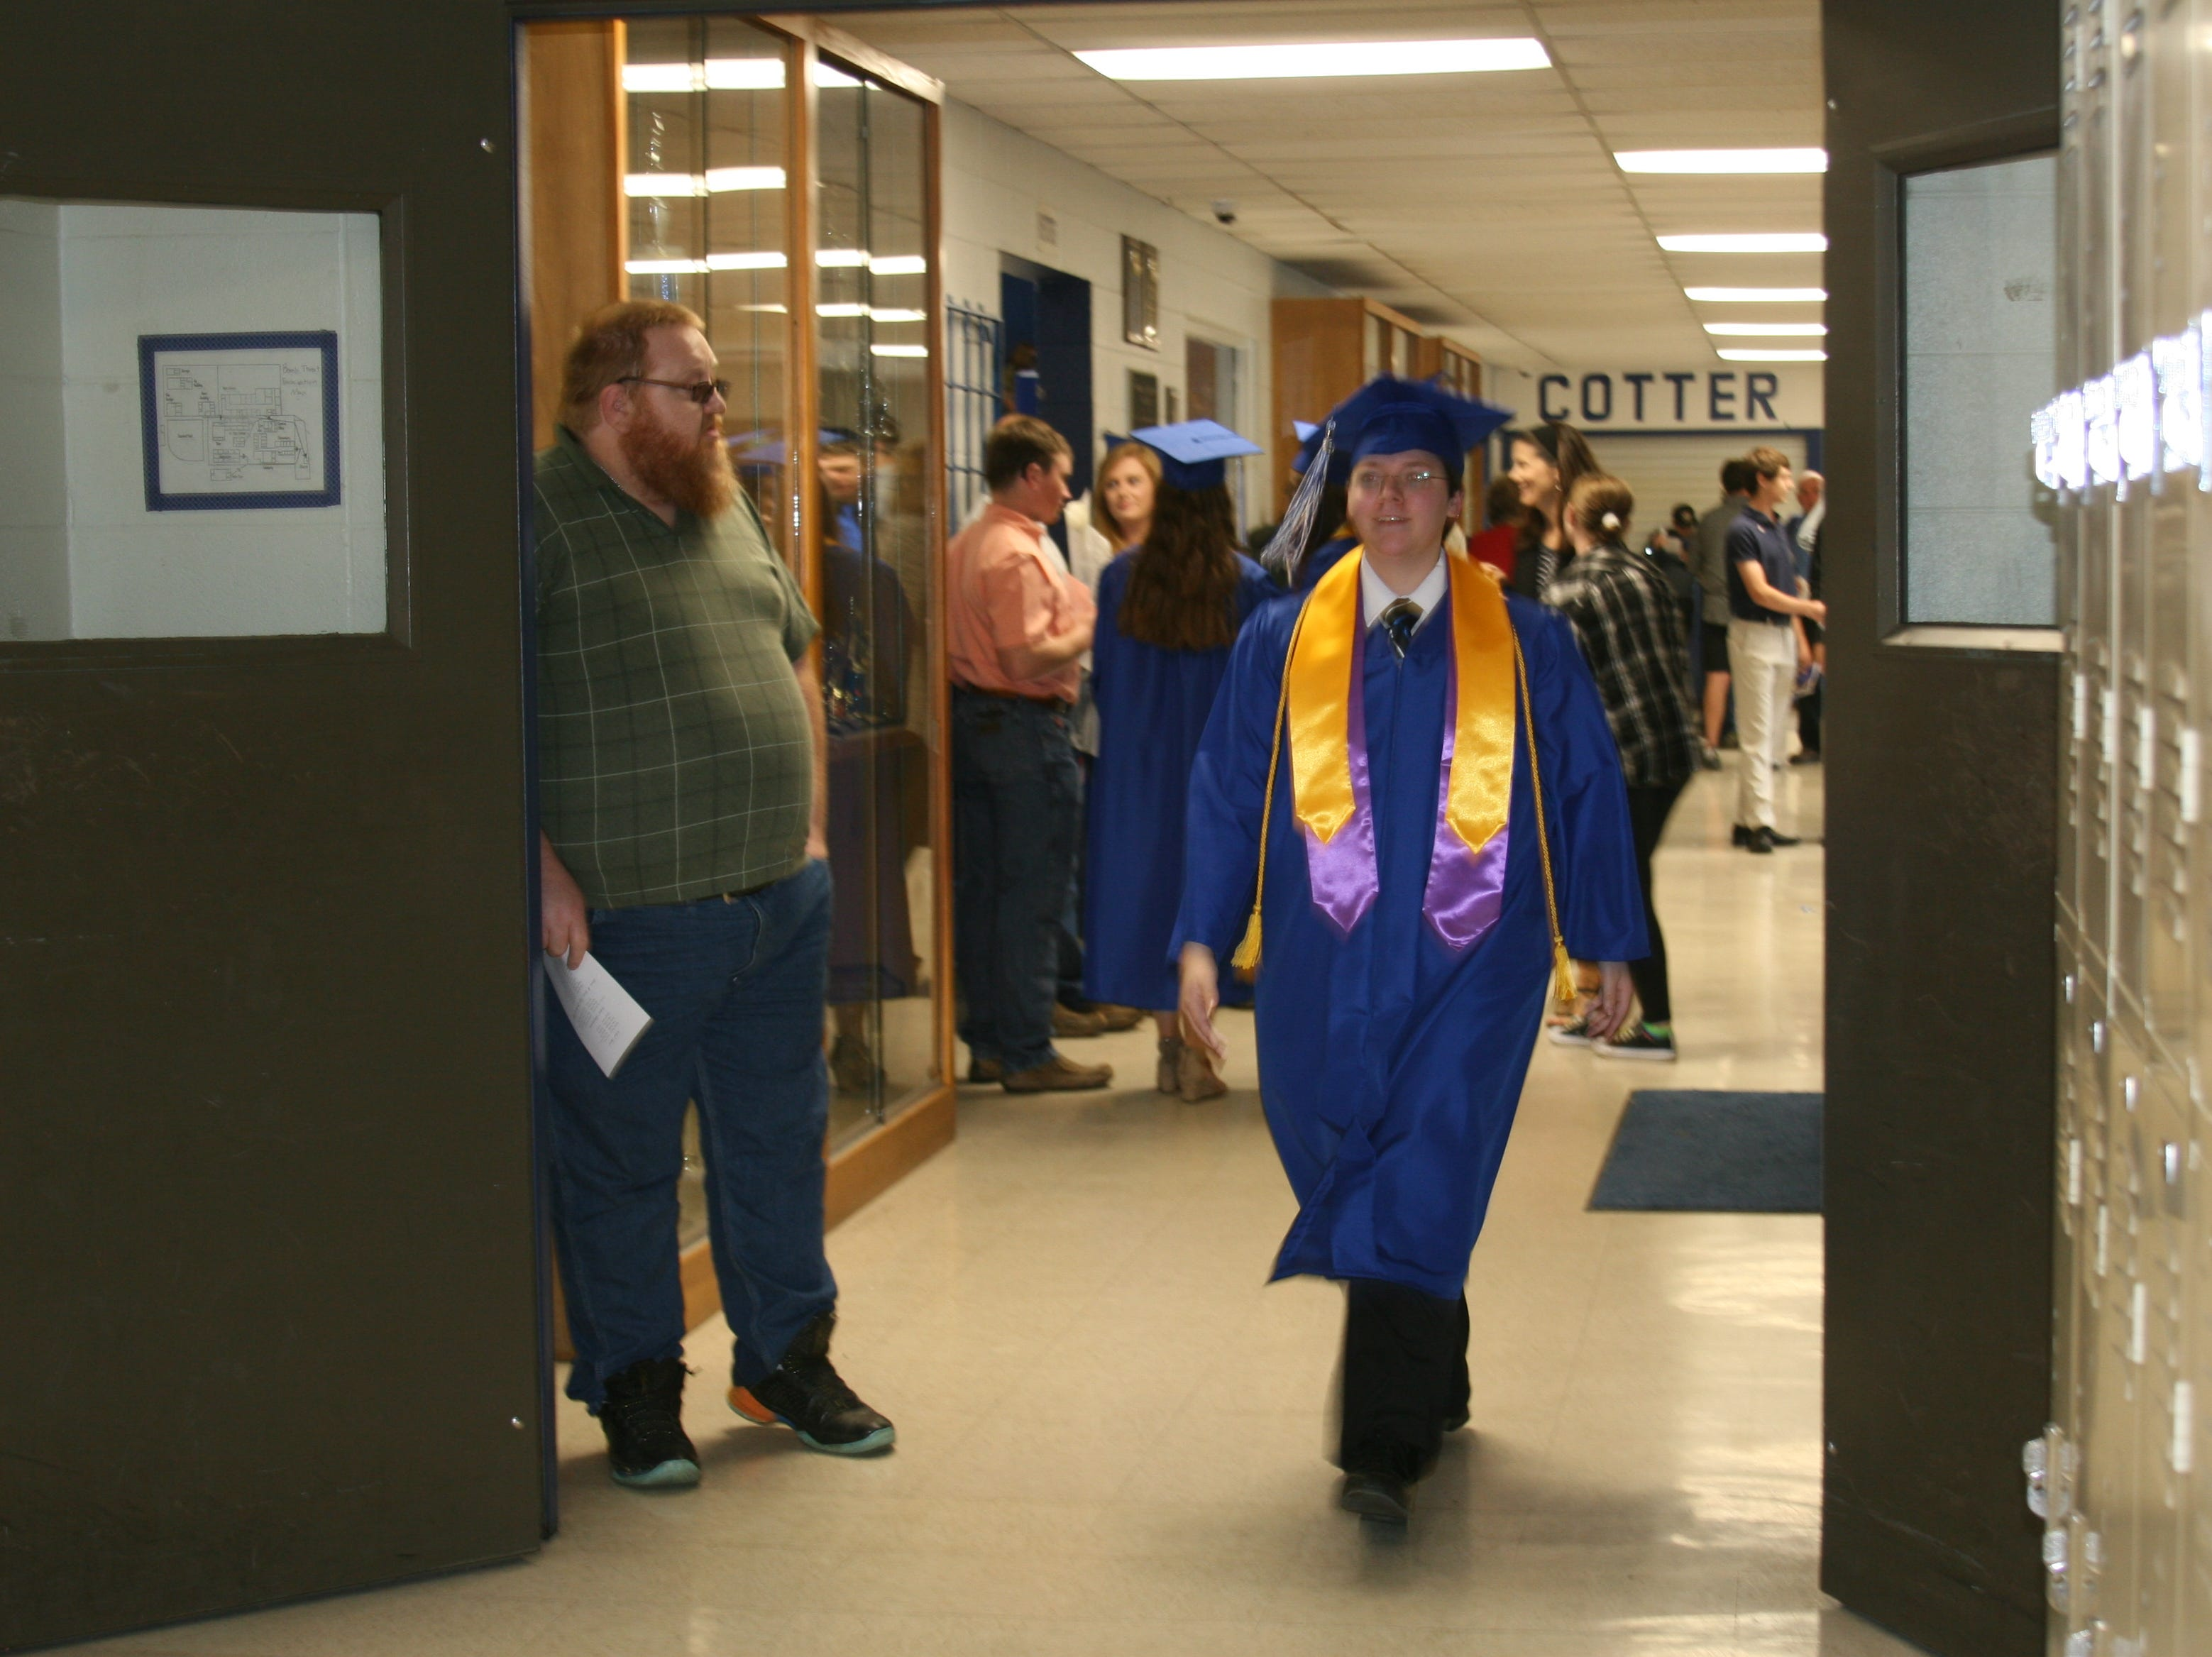 Some students paced the halls of Cotter High School before the 2019 graduation ceremony began.